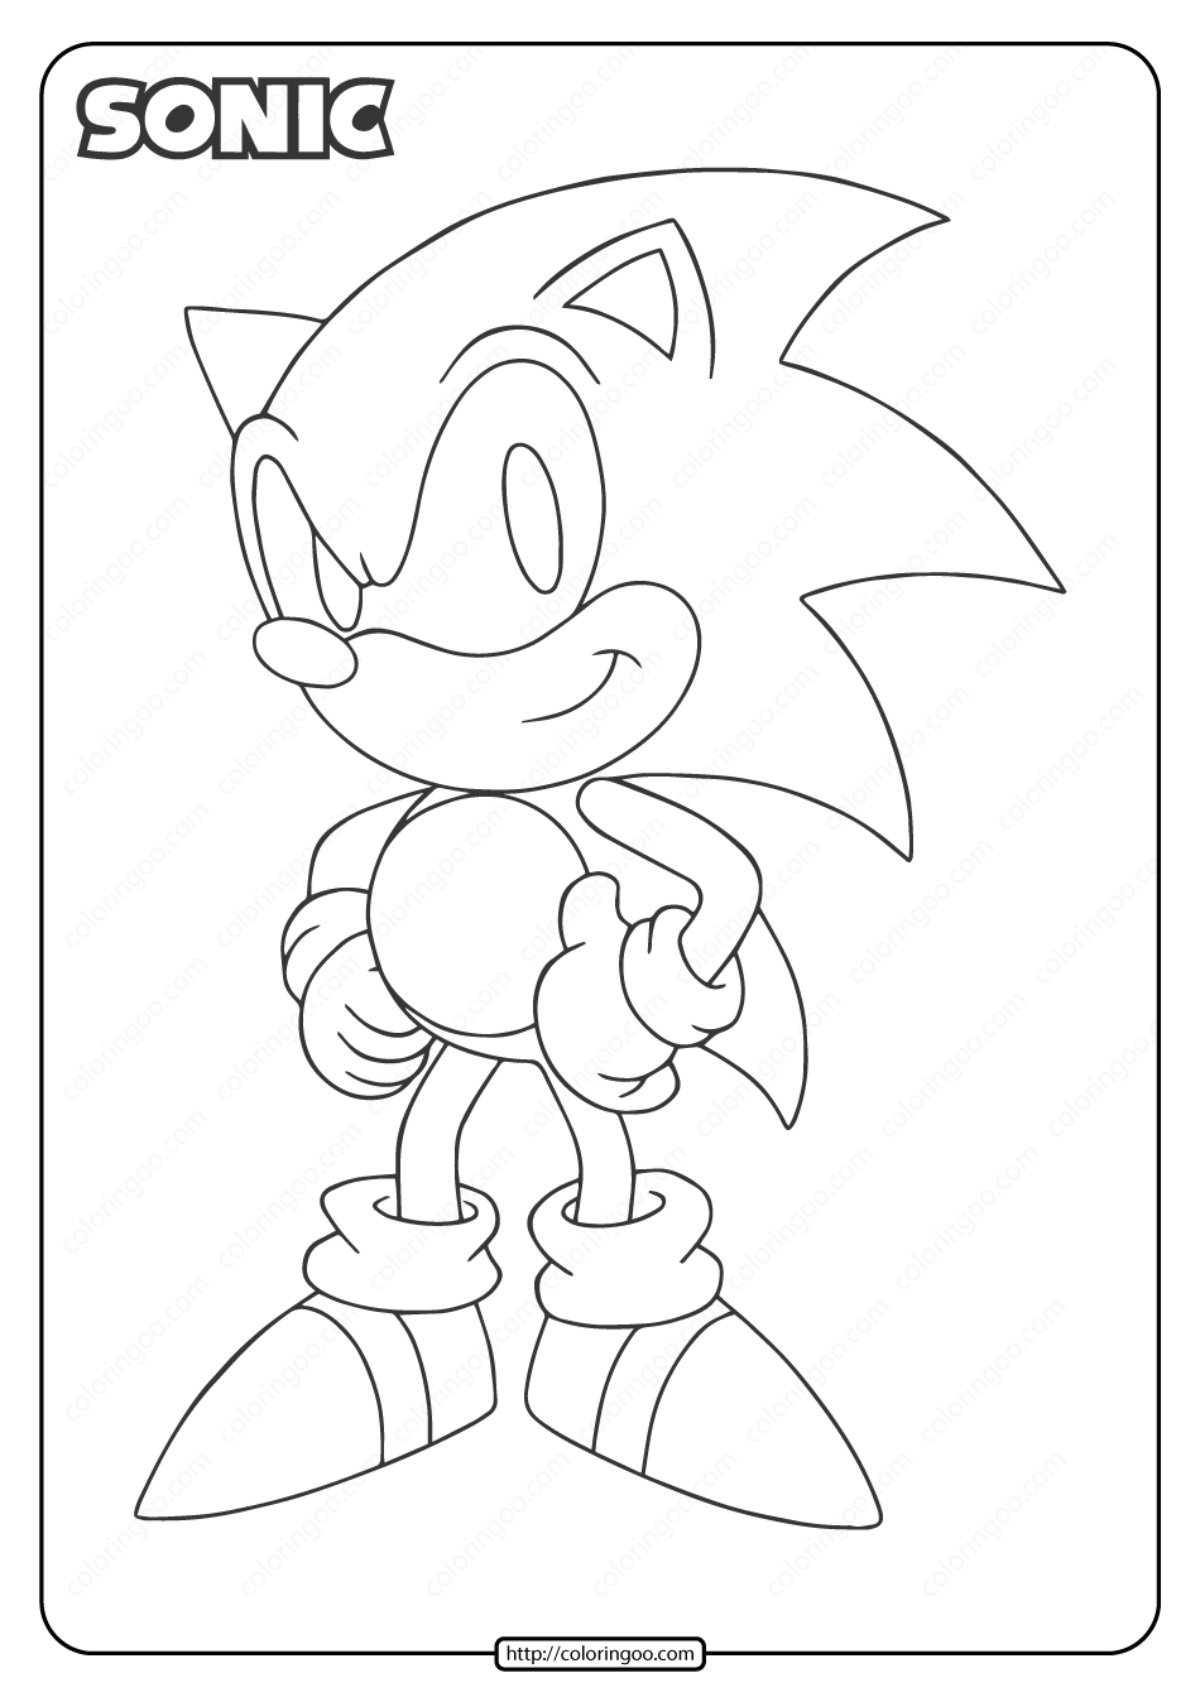 Free Printable Sonic Pdf Coloring Page